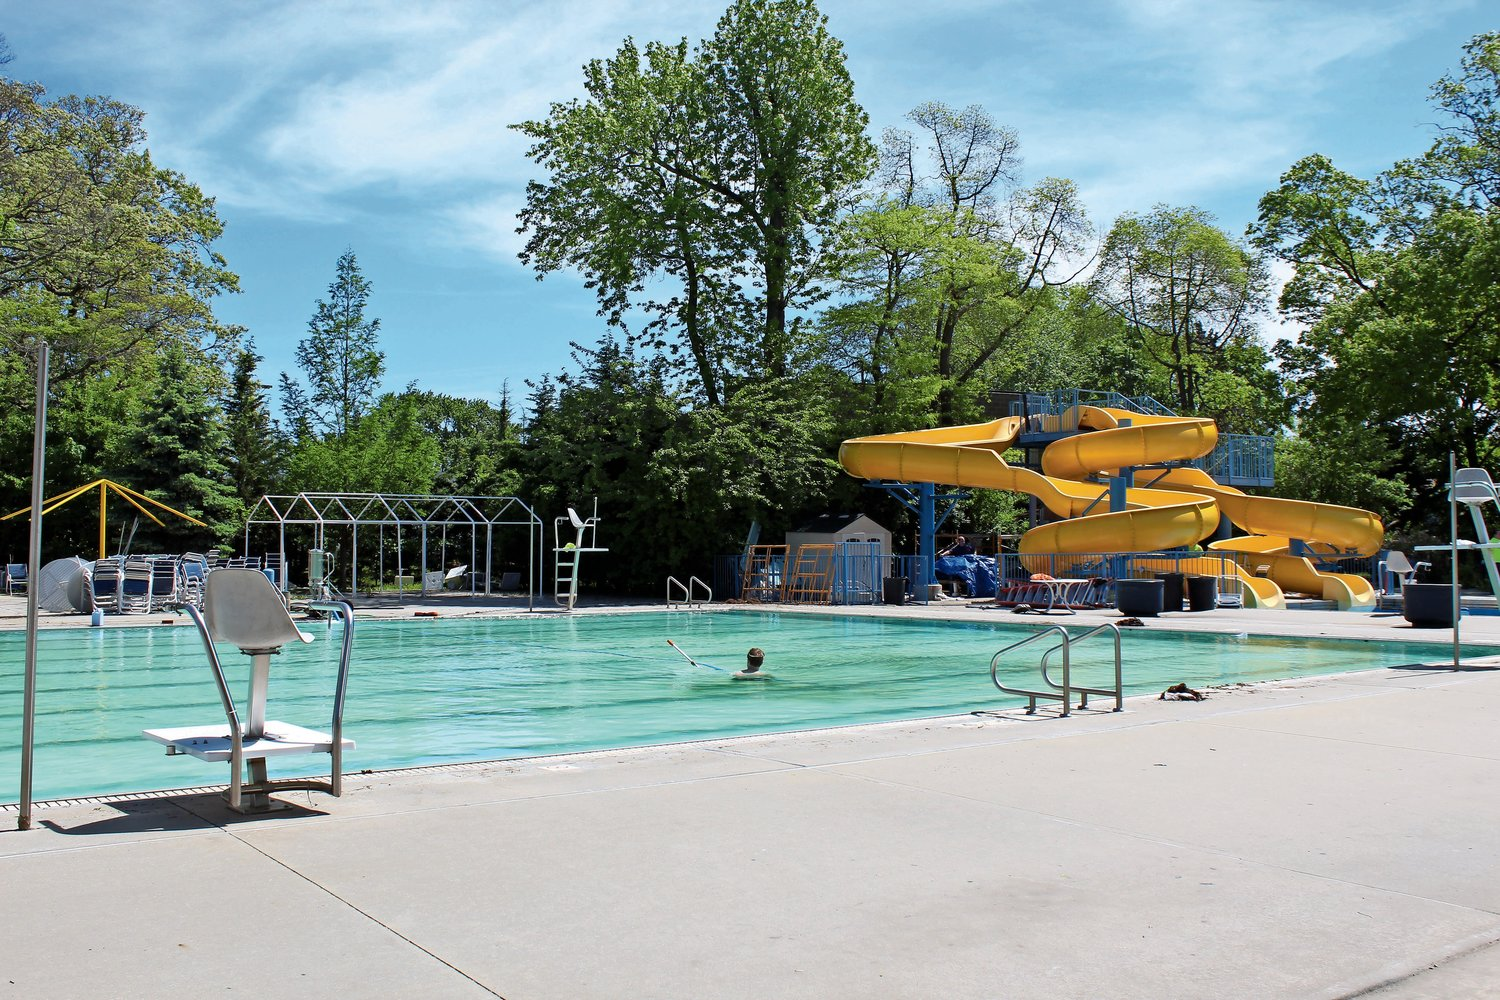 The Lynbrook village pool will open for Memorial Day weekend and then only for weekends until June 15, after which it will be accessible to members from 10 a.m. to 8 p.m. daily until Labor Day.